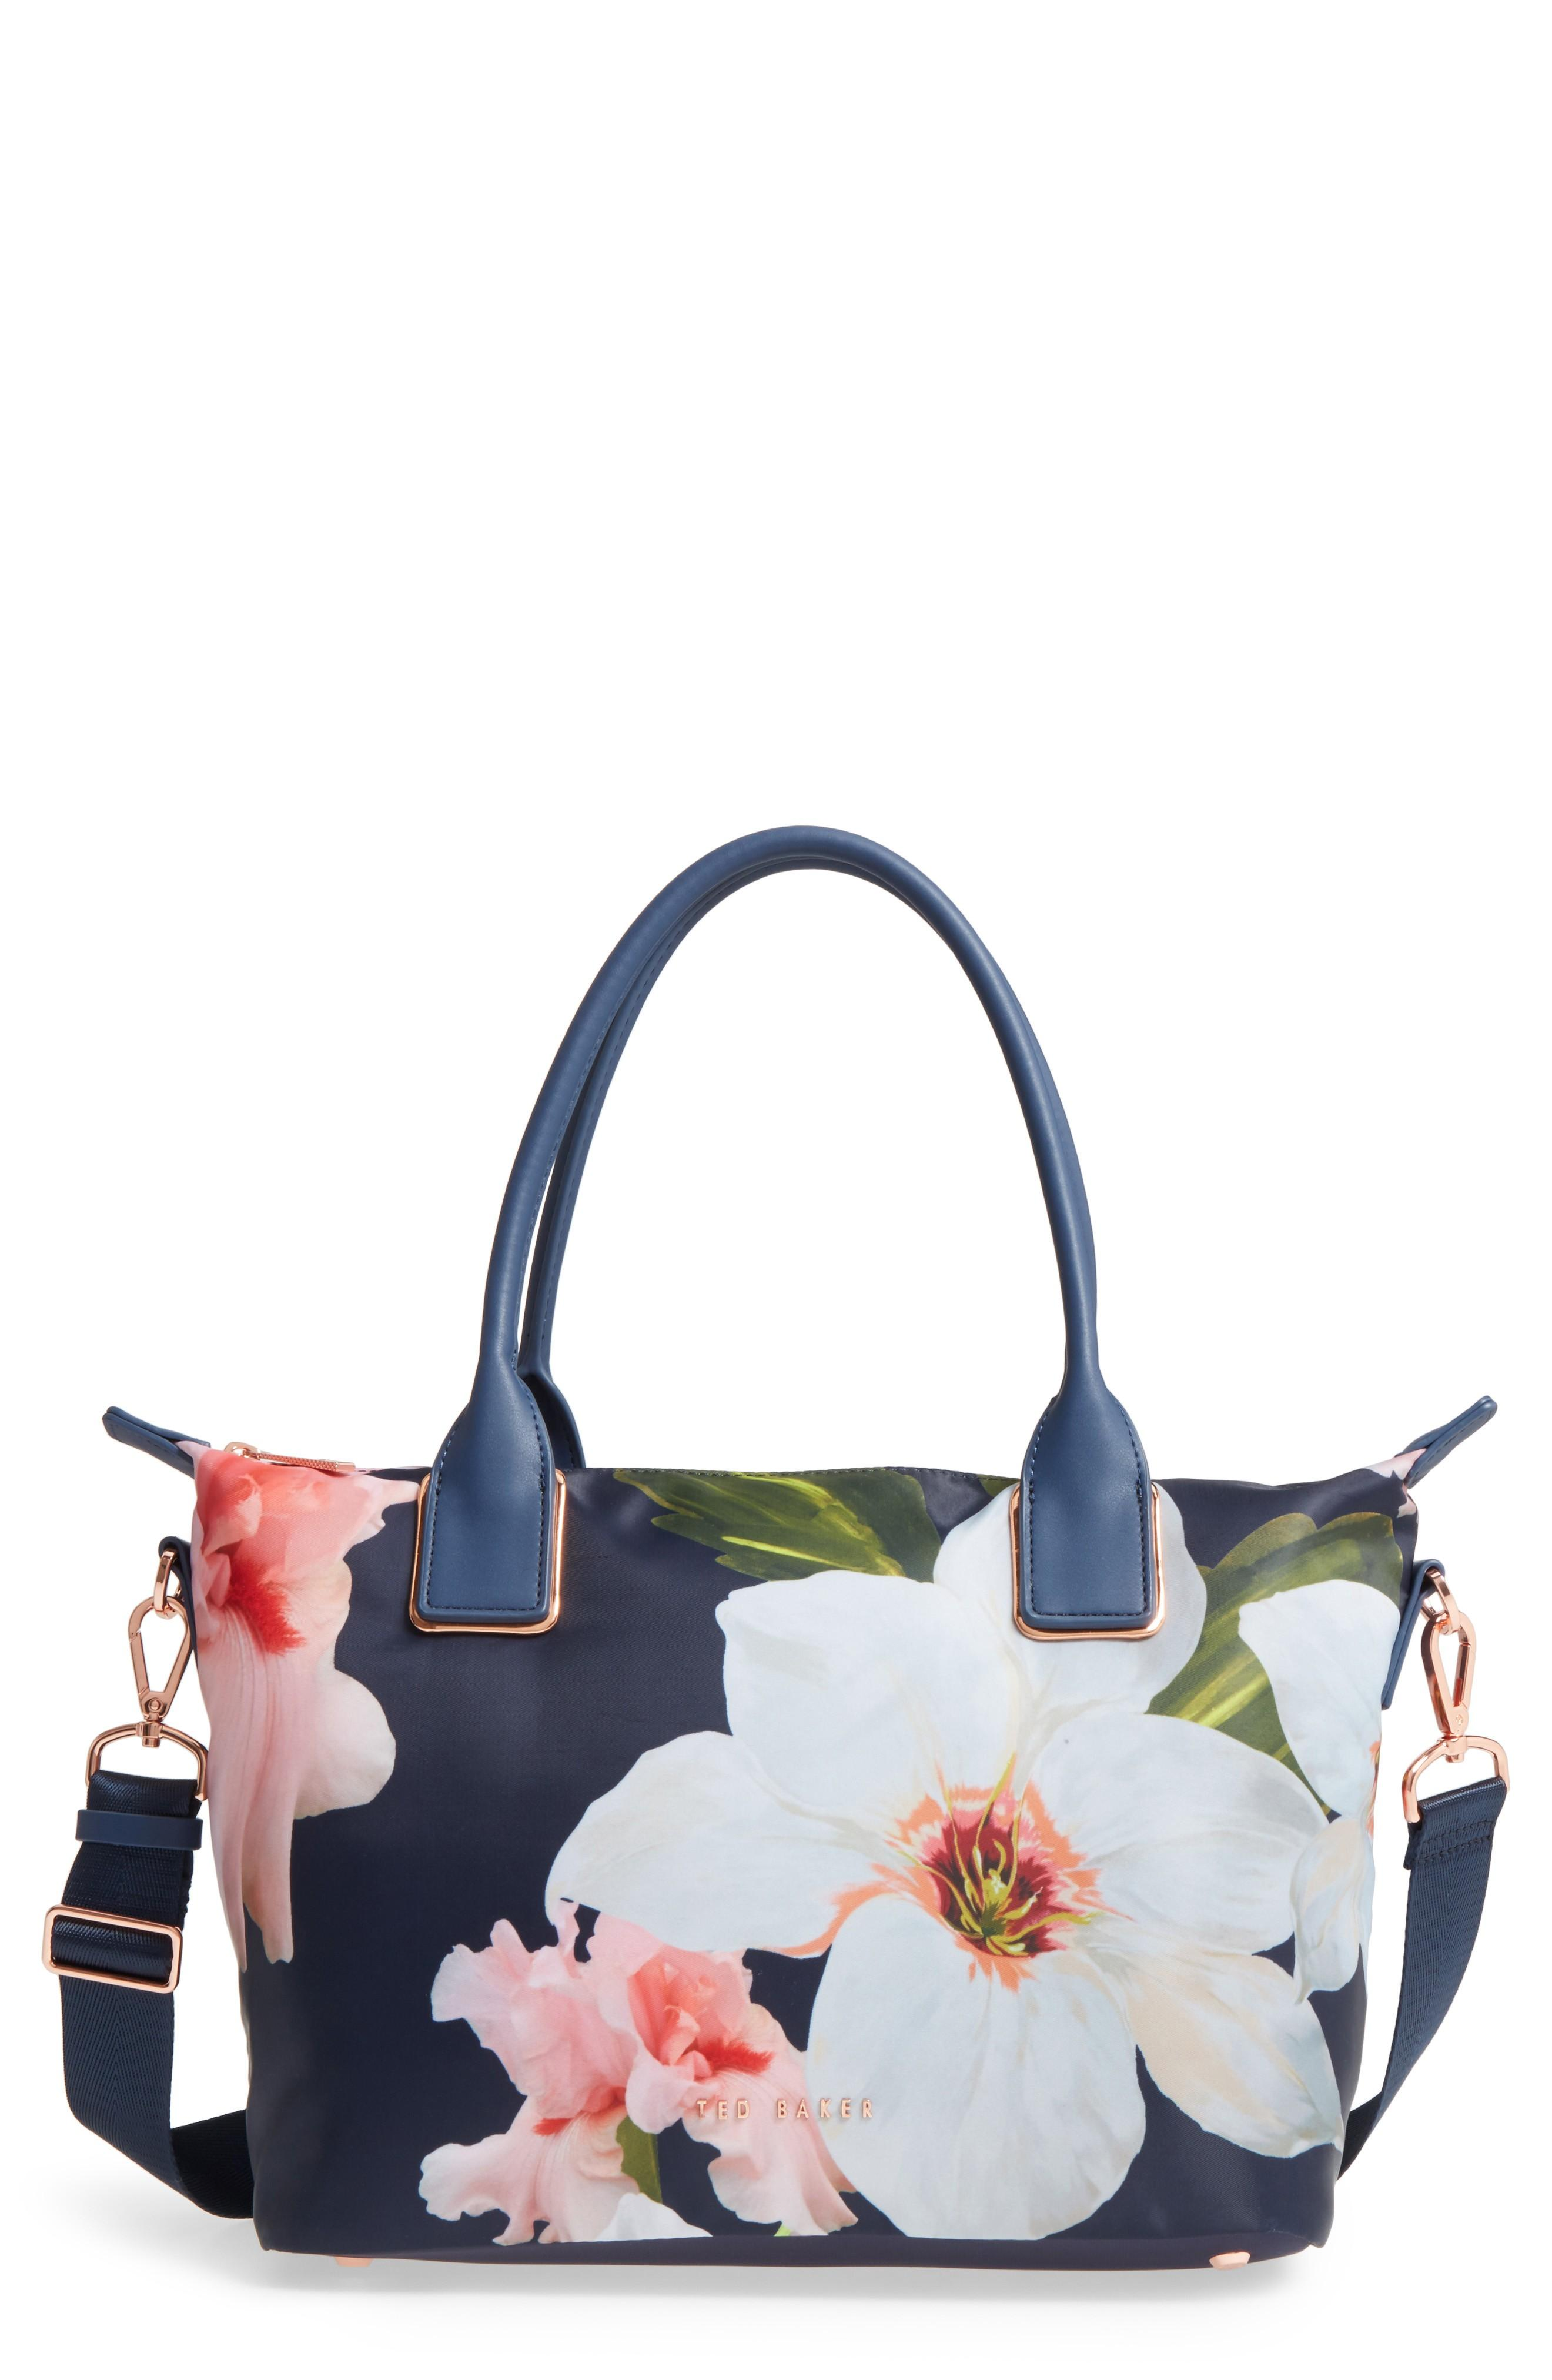 d40d7960490e Ted Baker Small Orsja Chatsworth Bloom Nylon Tote - Blue In Navy ...